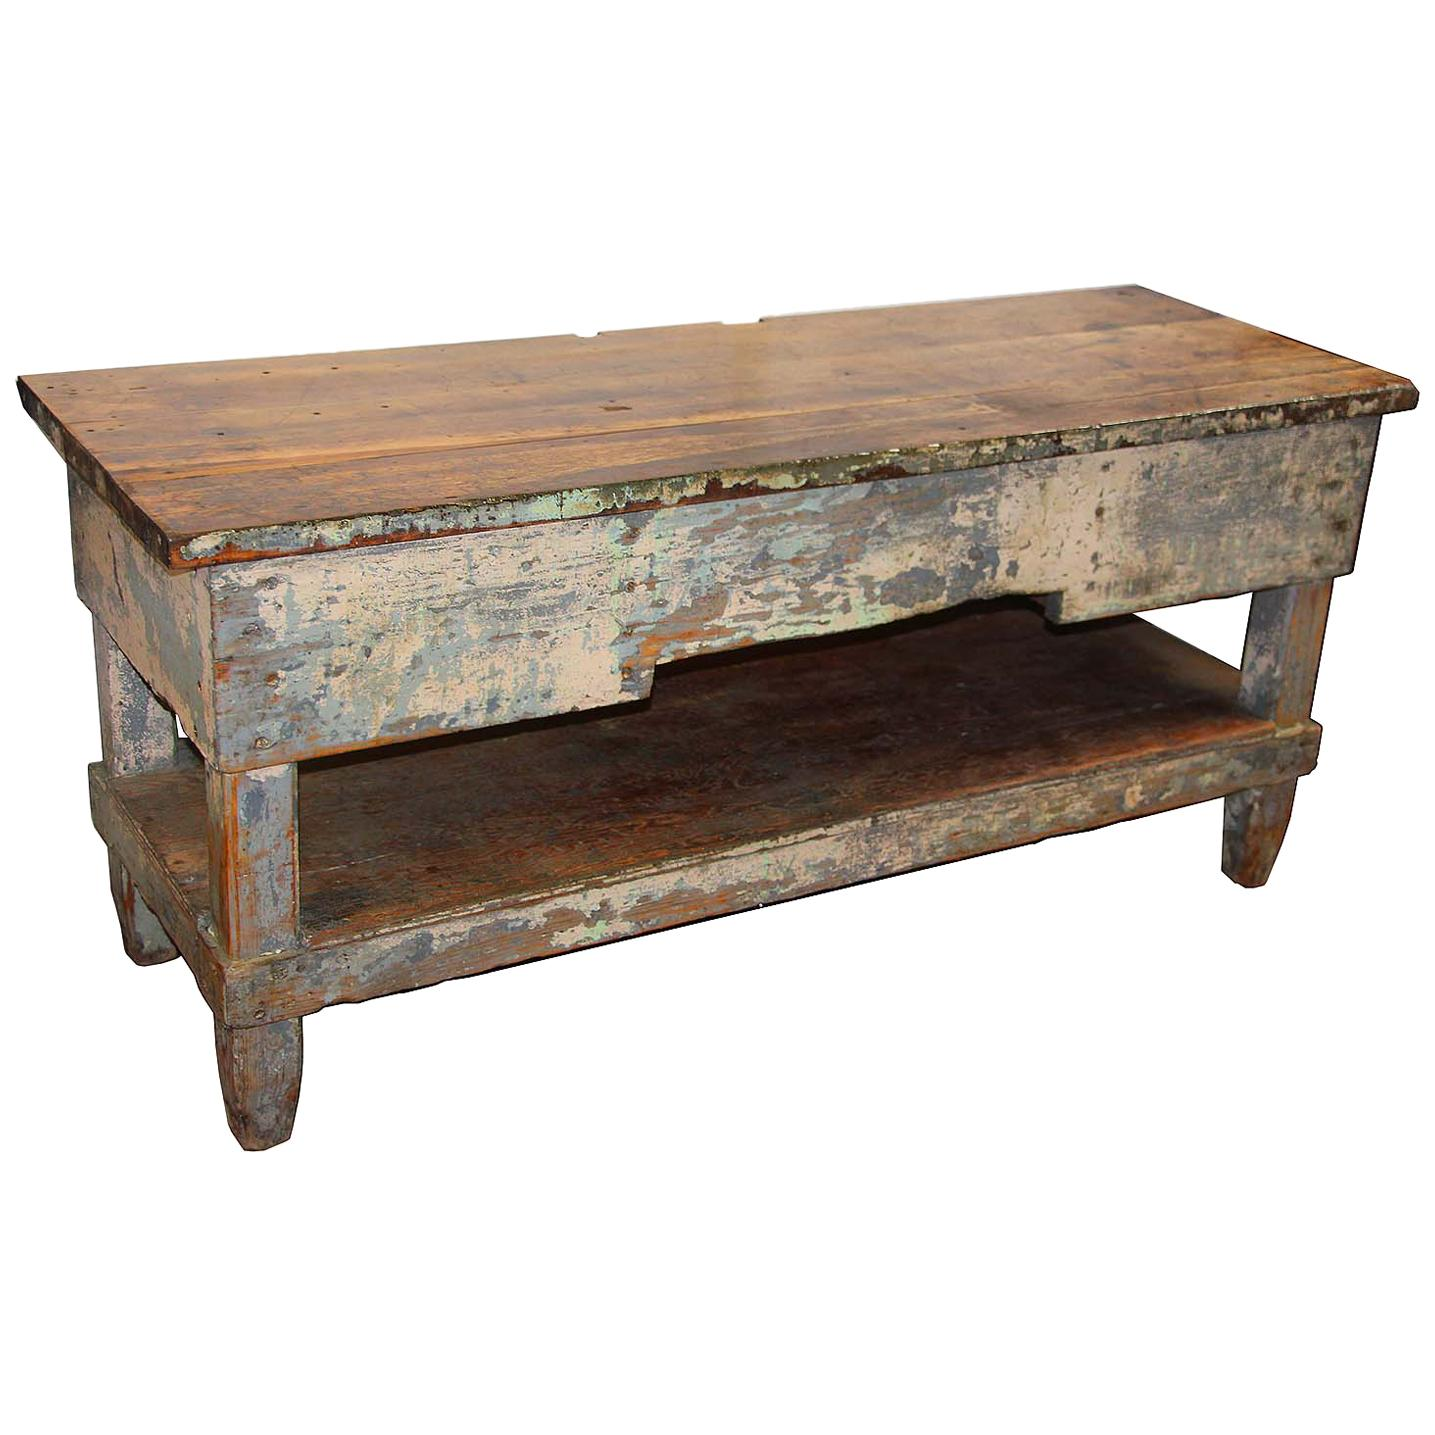 Primitive Wooden Worktable Or Console For Sale At 1stdibs